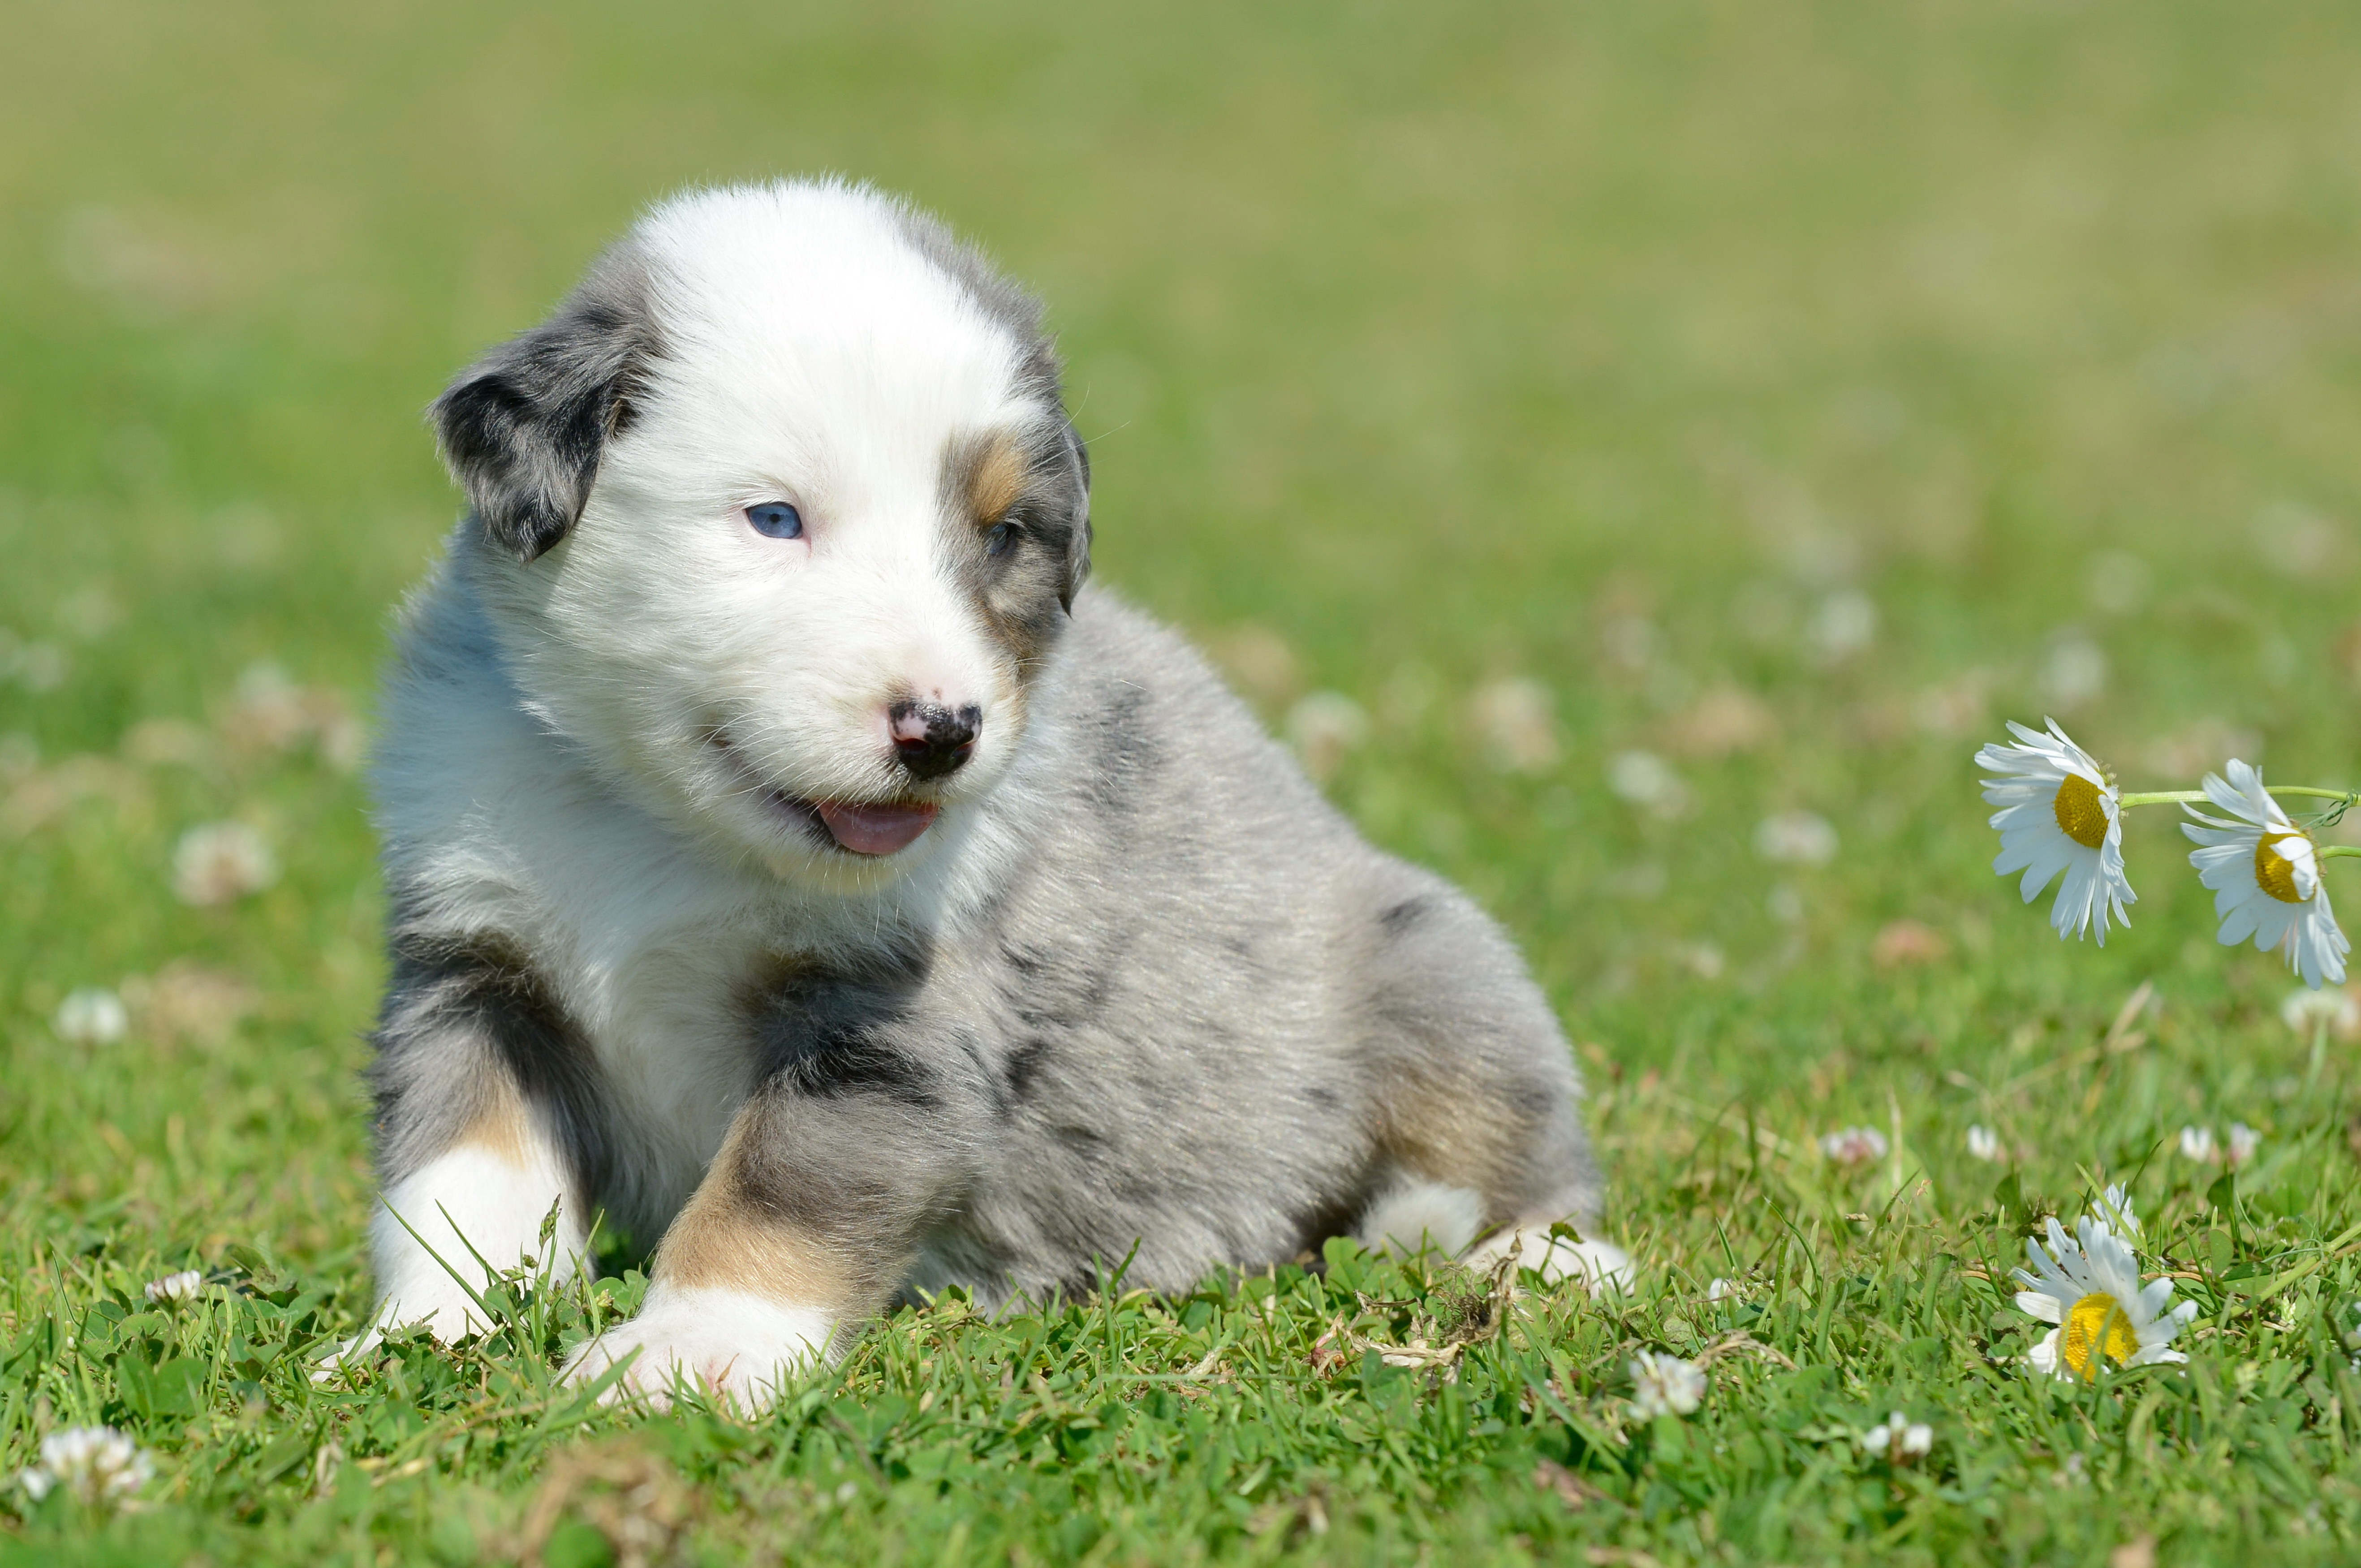 77671 download wallpaper Animals, Puppy, Grass, Camomile screensavers and pictures for free